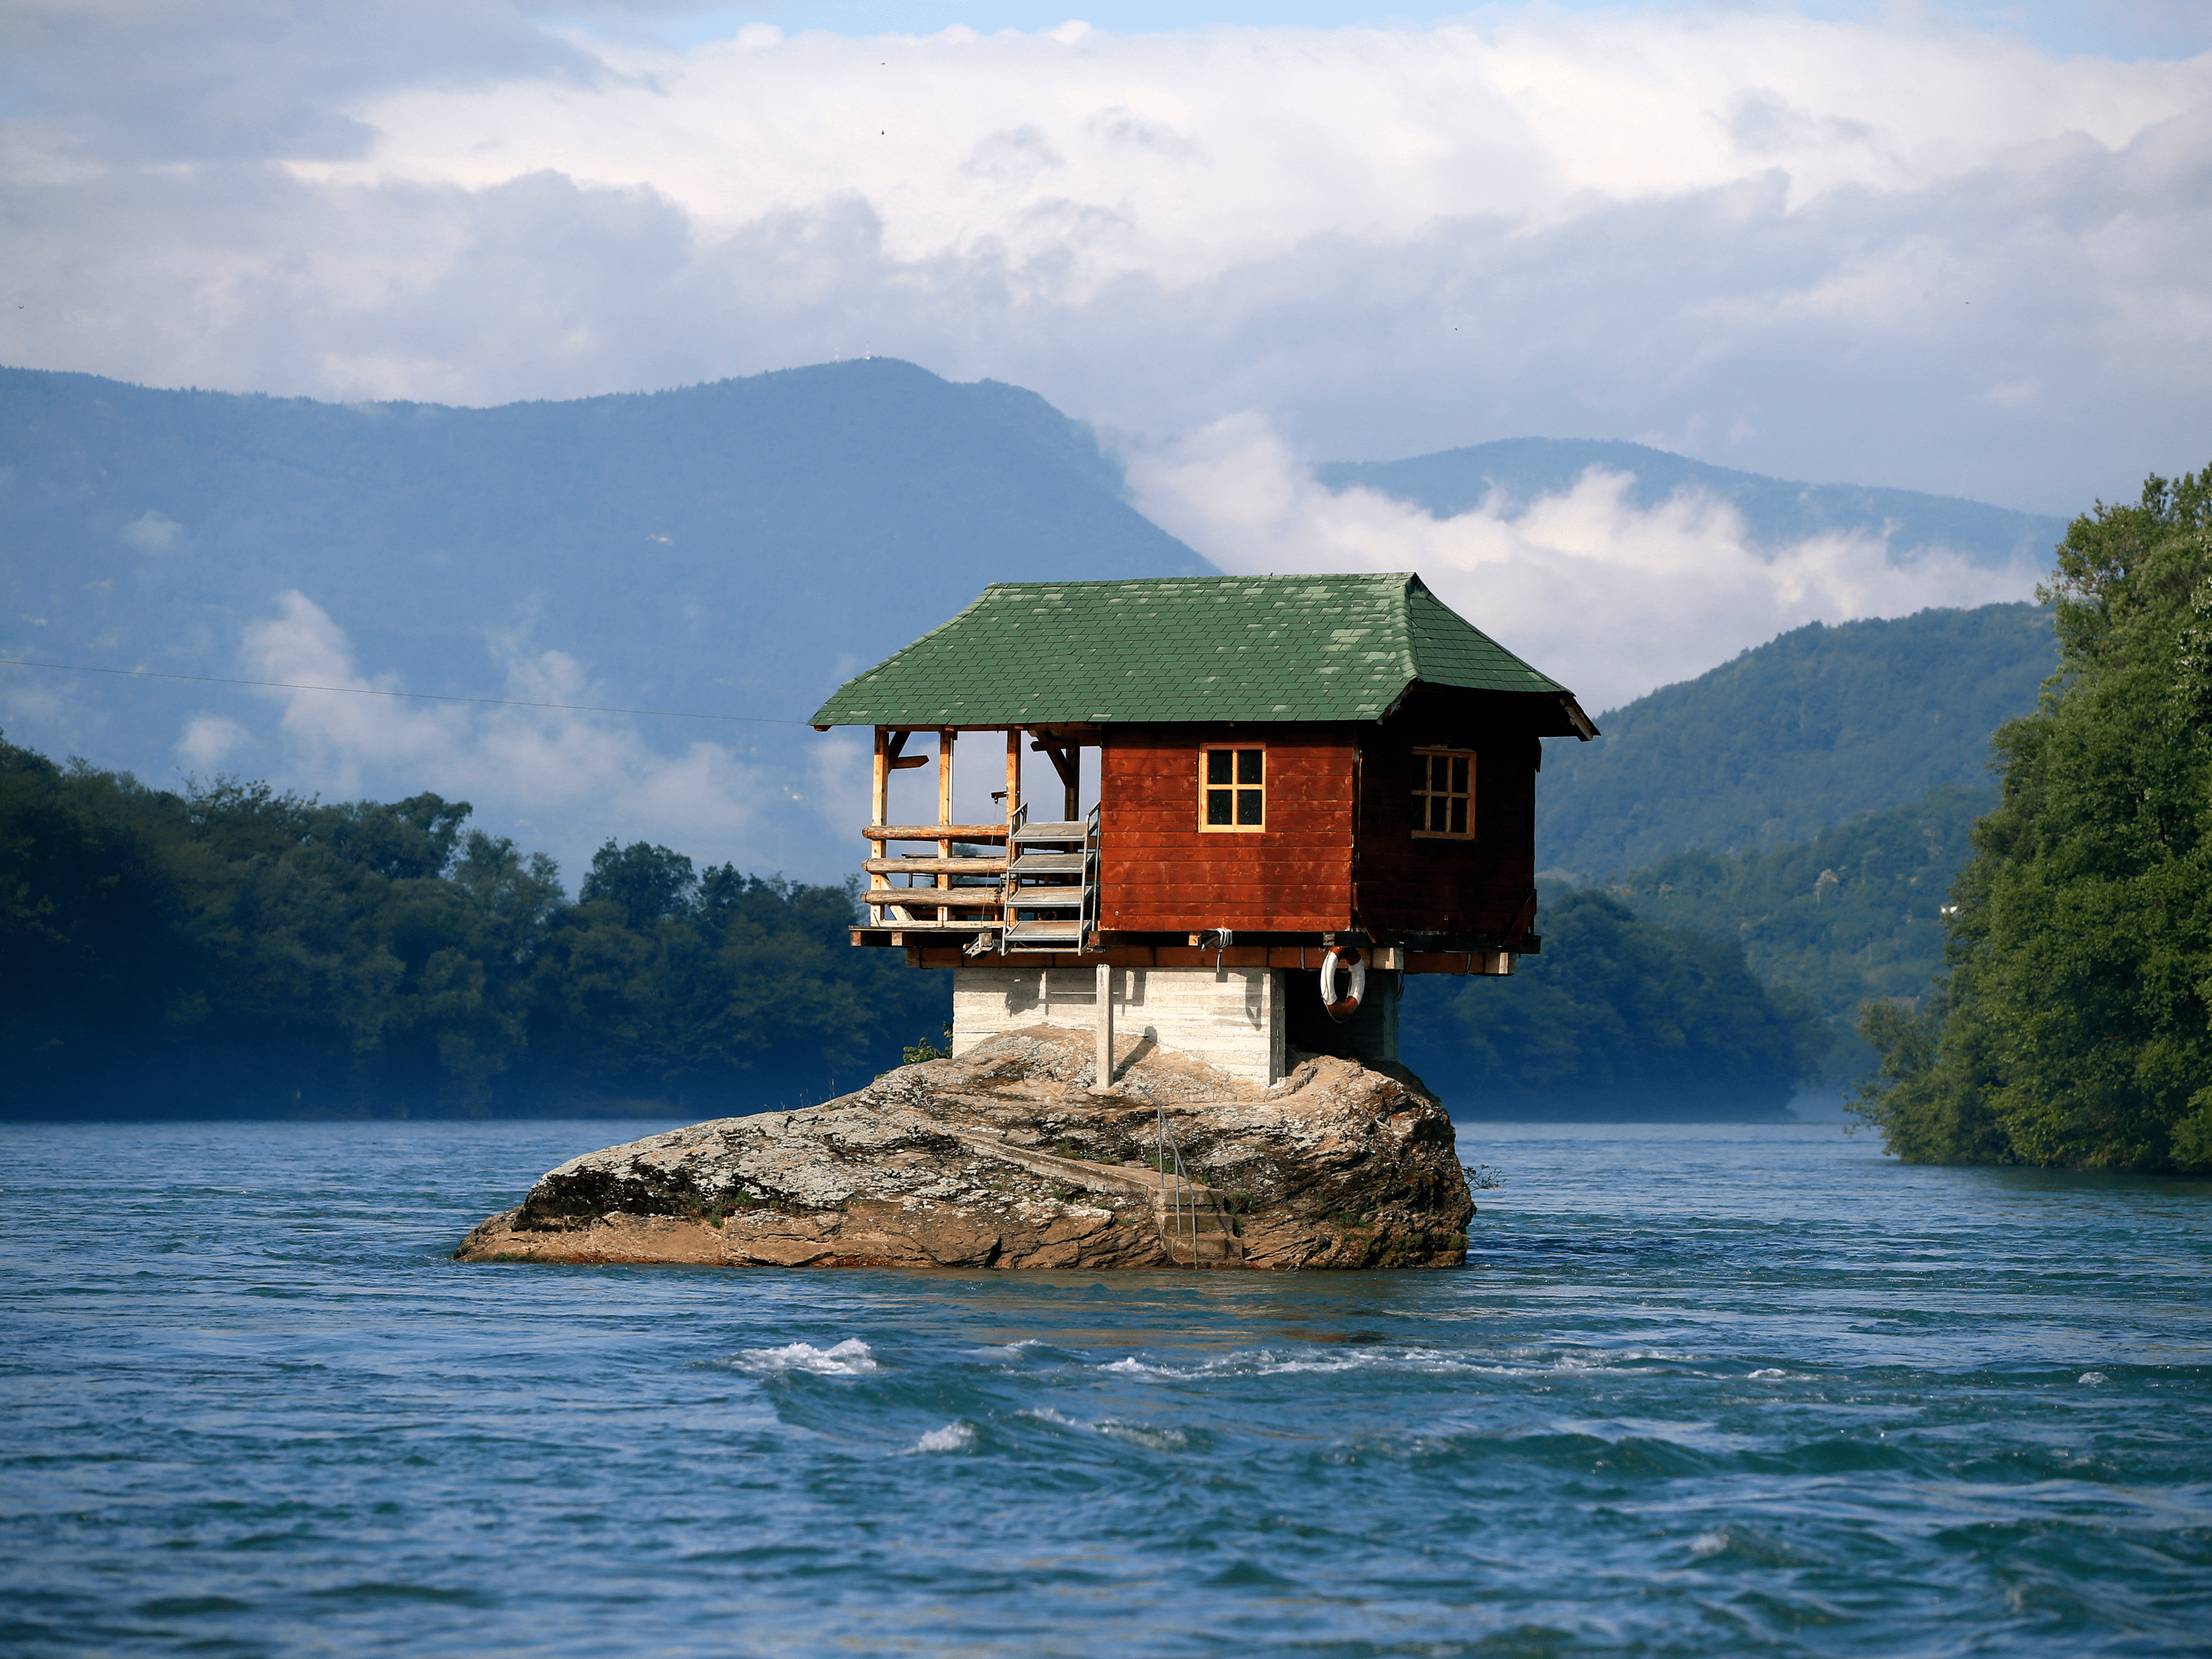 Near the Serbian town of Bajina Basta, a house built in 1968 has stood for nearly 50 years on top of a rock in the middle of the River Drina.